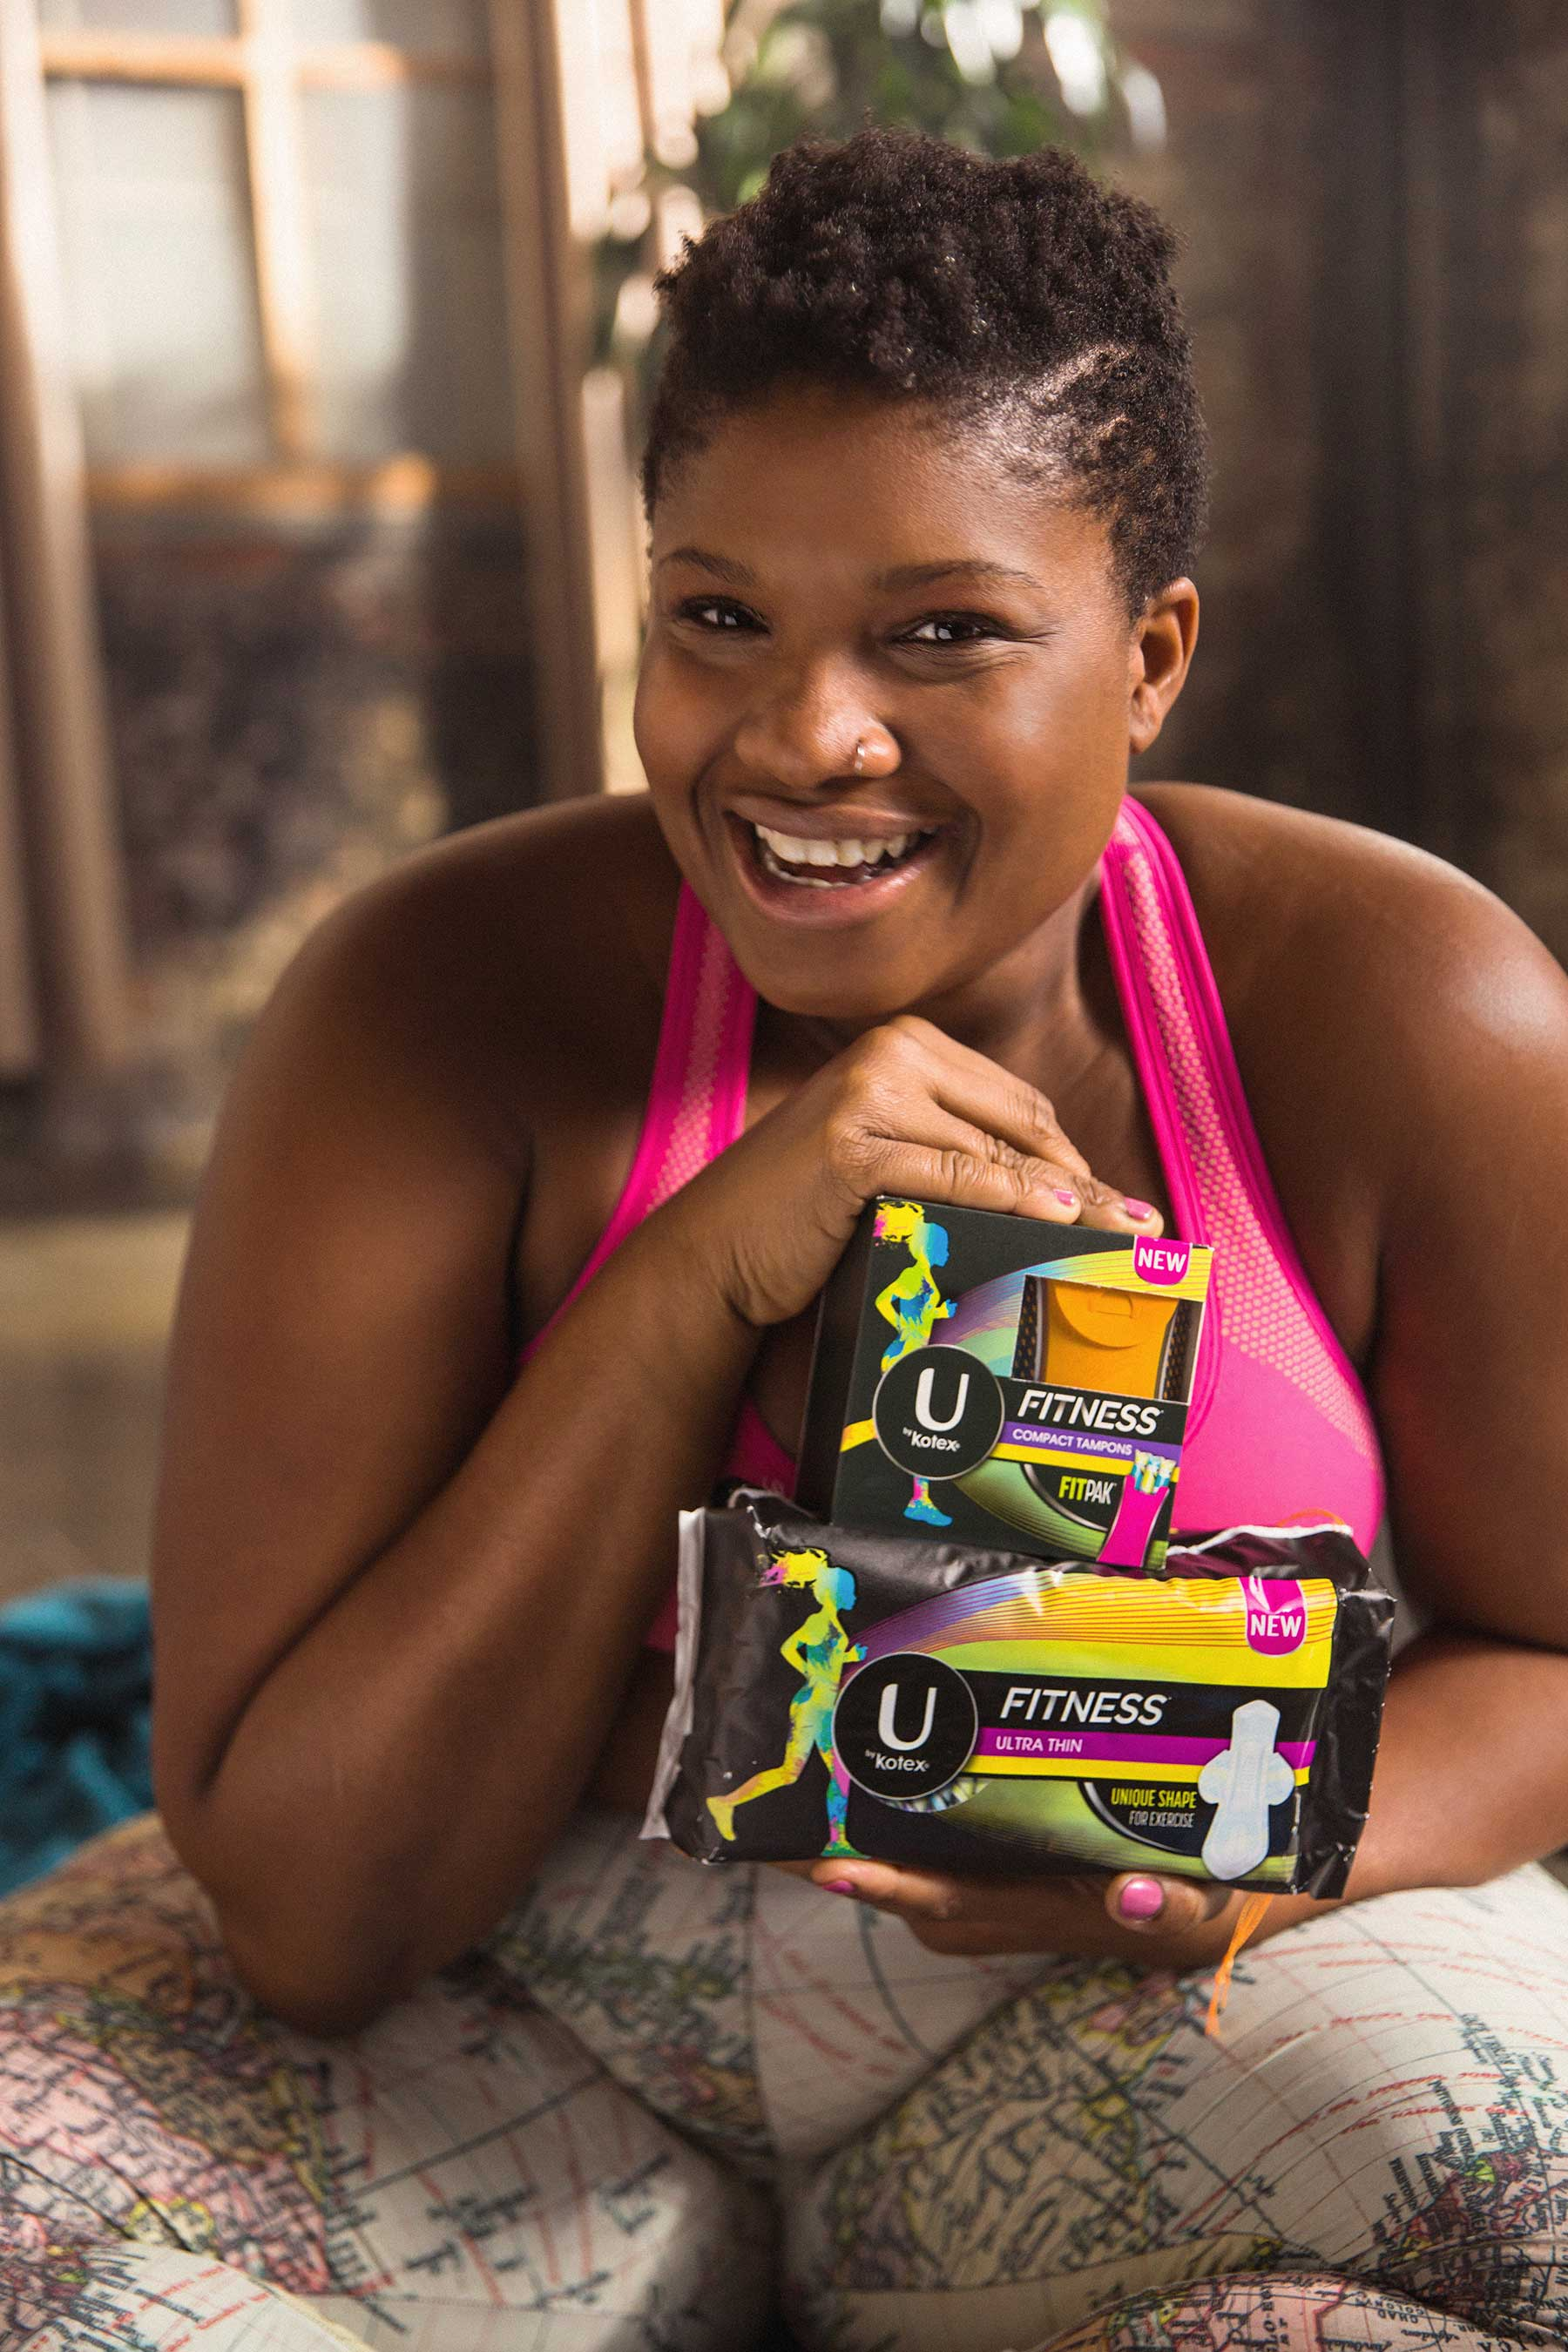 U by Kotex® is excited to partner with Jessamyn Stanley, a yoga teacher, body positivity advocate and writer, to help launch its NEW U by Kotex® FITNESS* line.